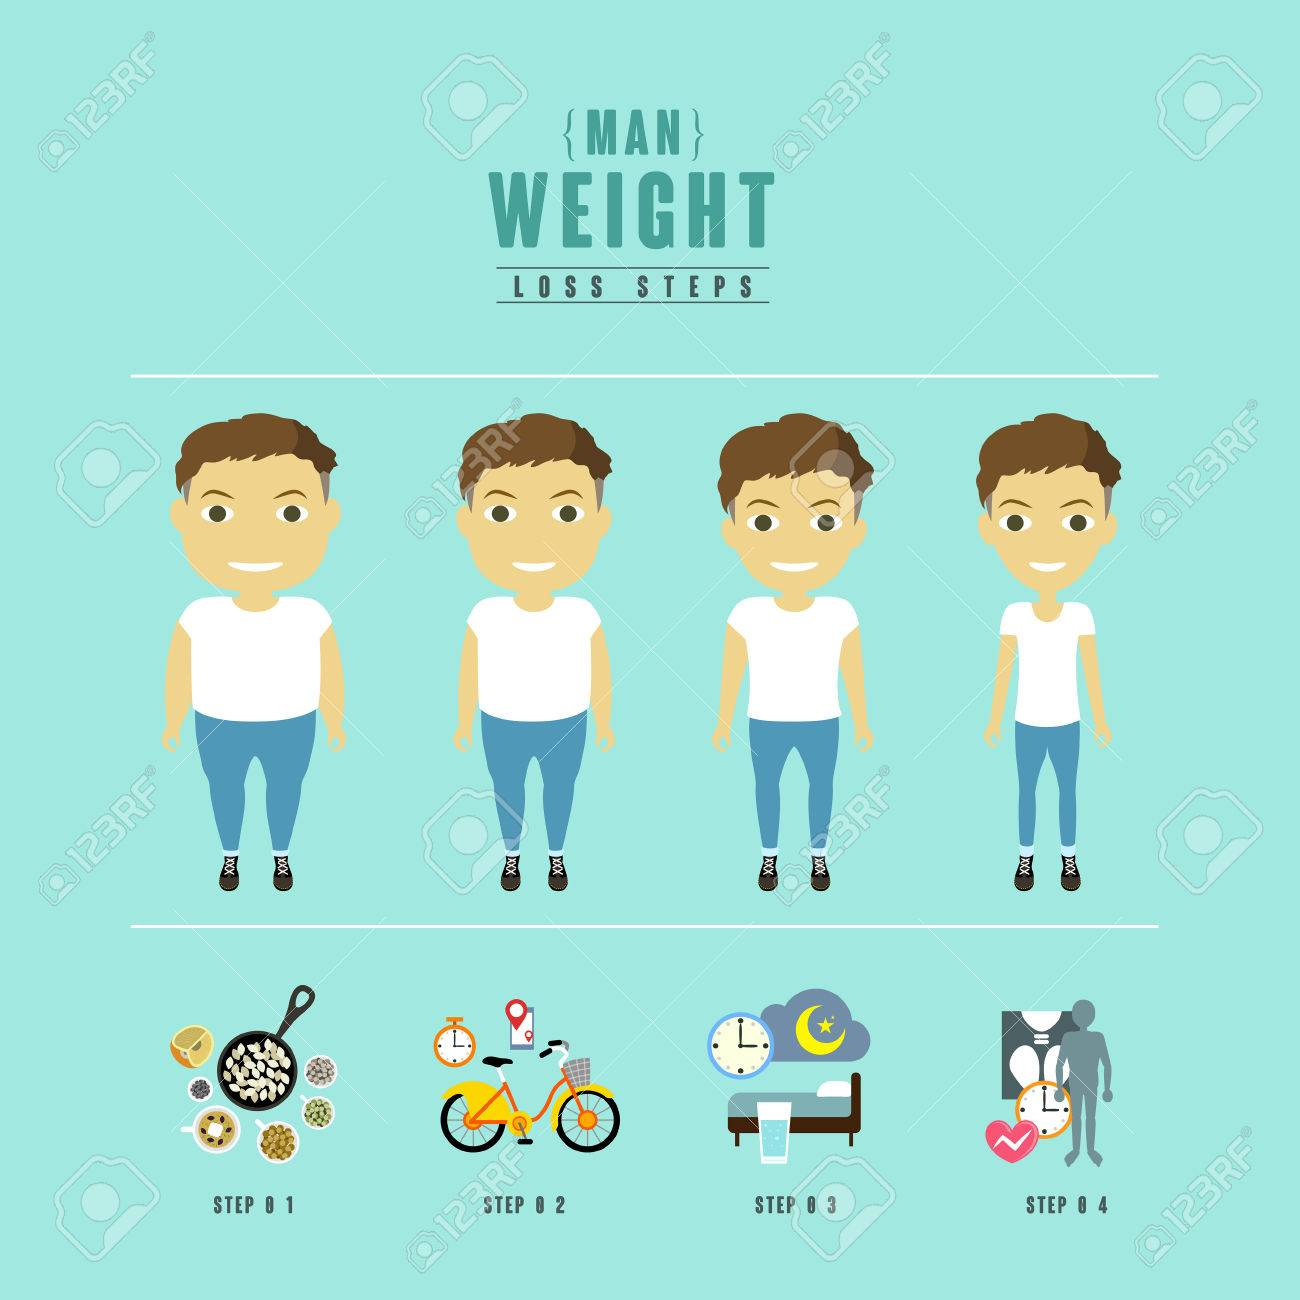 weight loss steps in flat design style royalty free cliparts